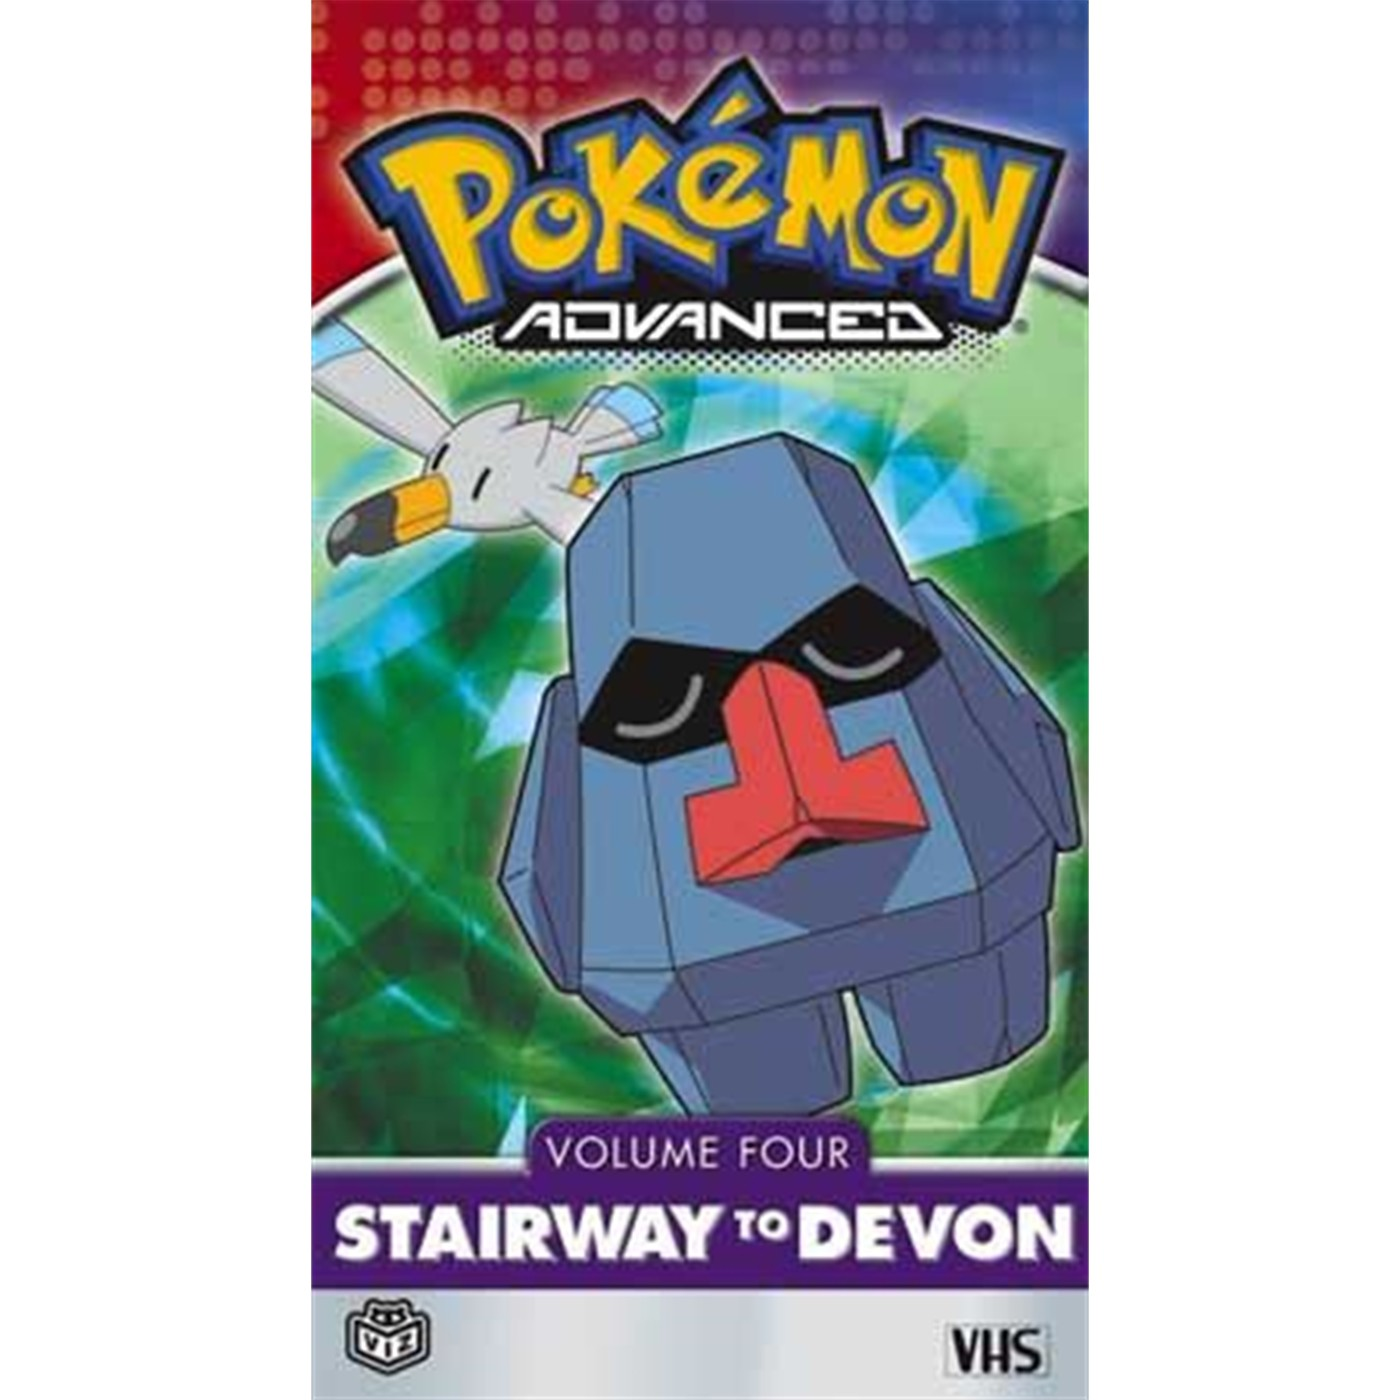 POKEMON ADVANCED (VHS), VOLUME 4